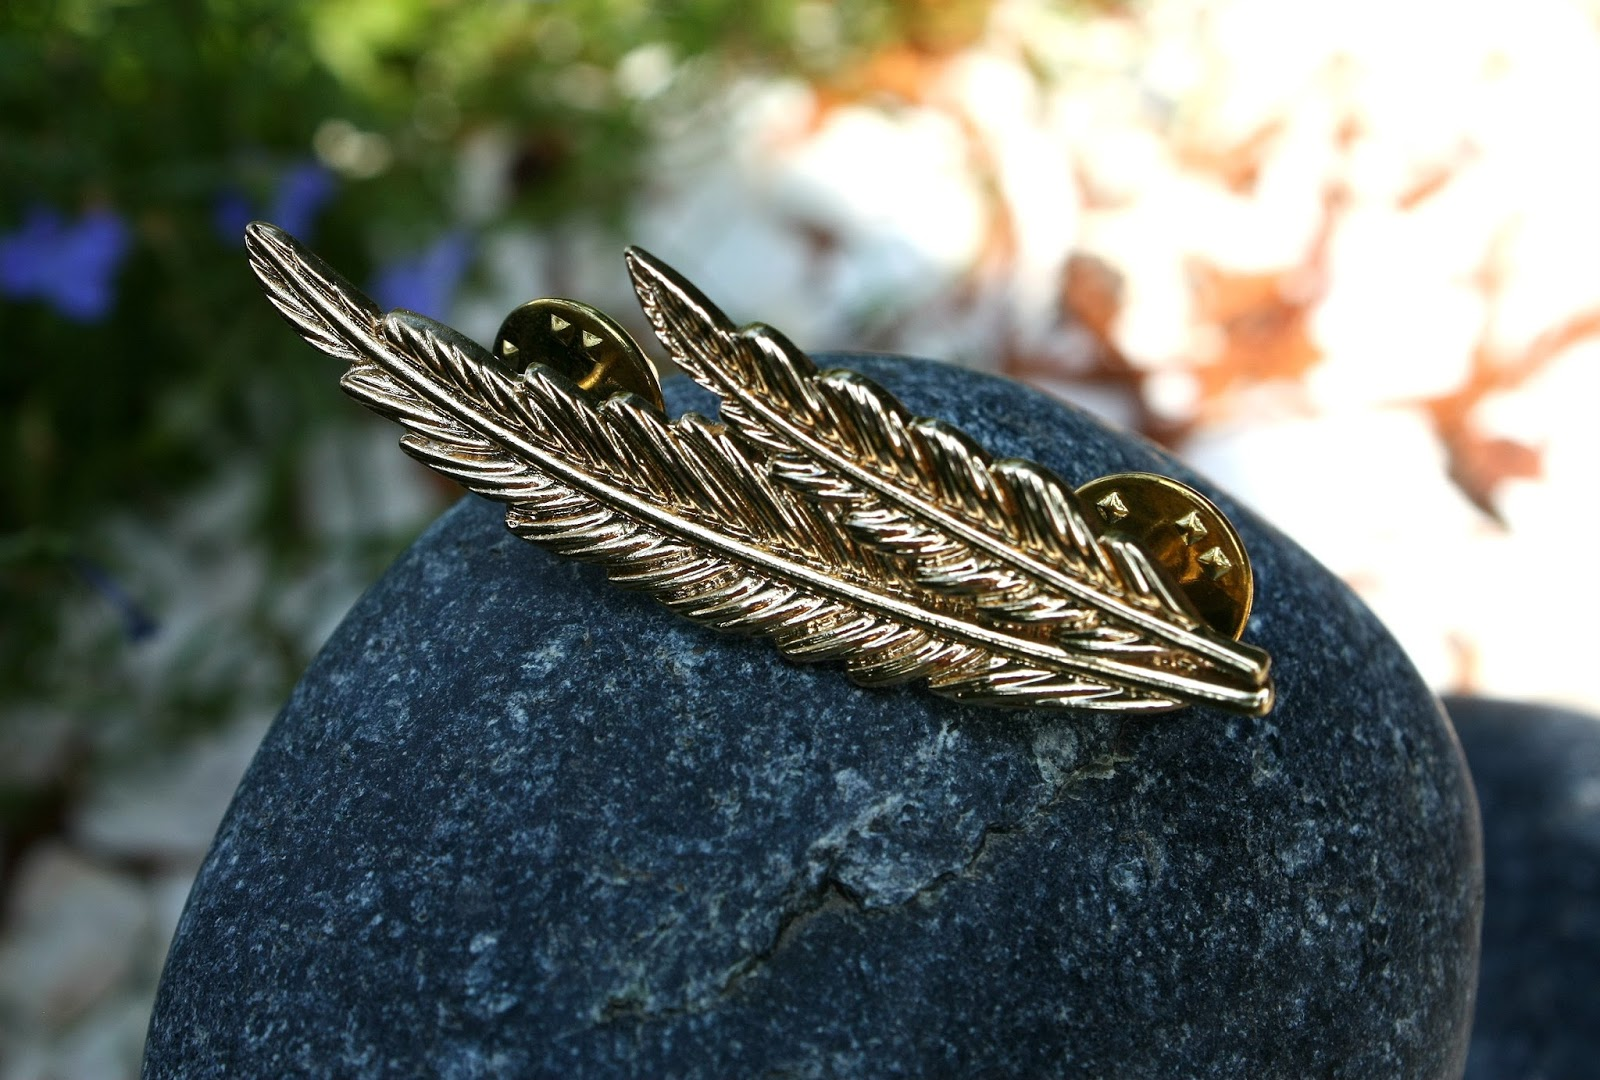 http://www.dresslily.com/feather-shape-alloy-brooch-for-women-product1346495.html?lkid=1505435